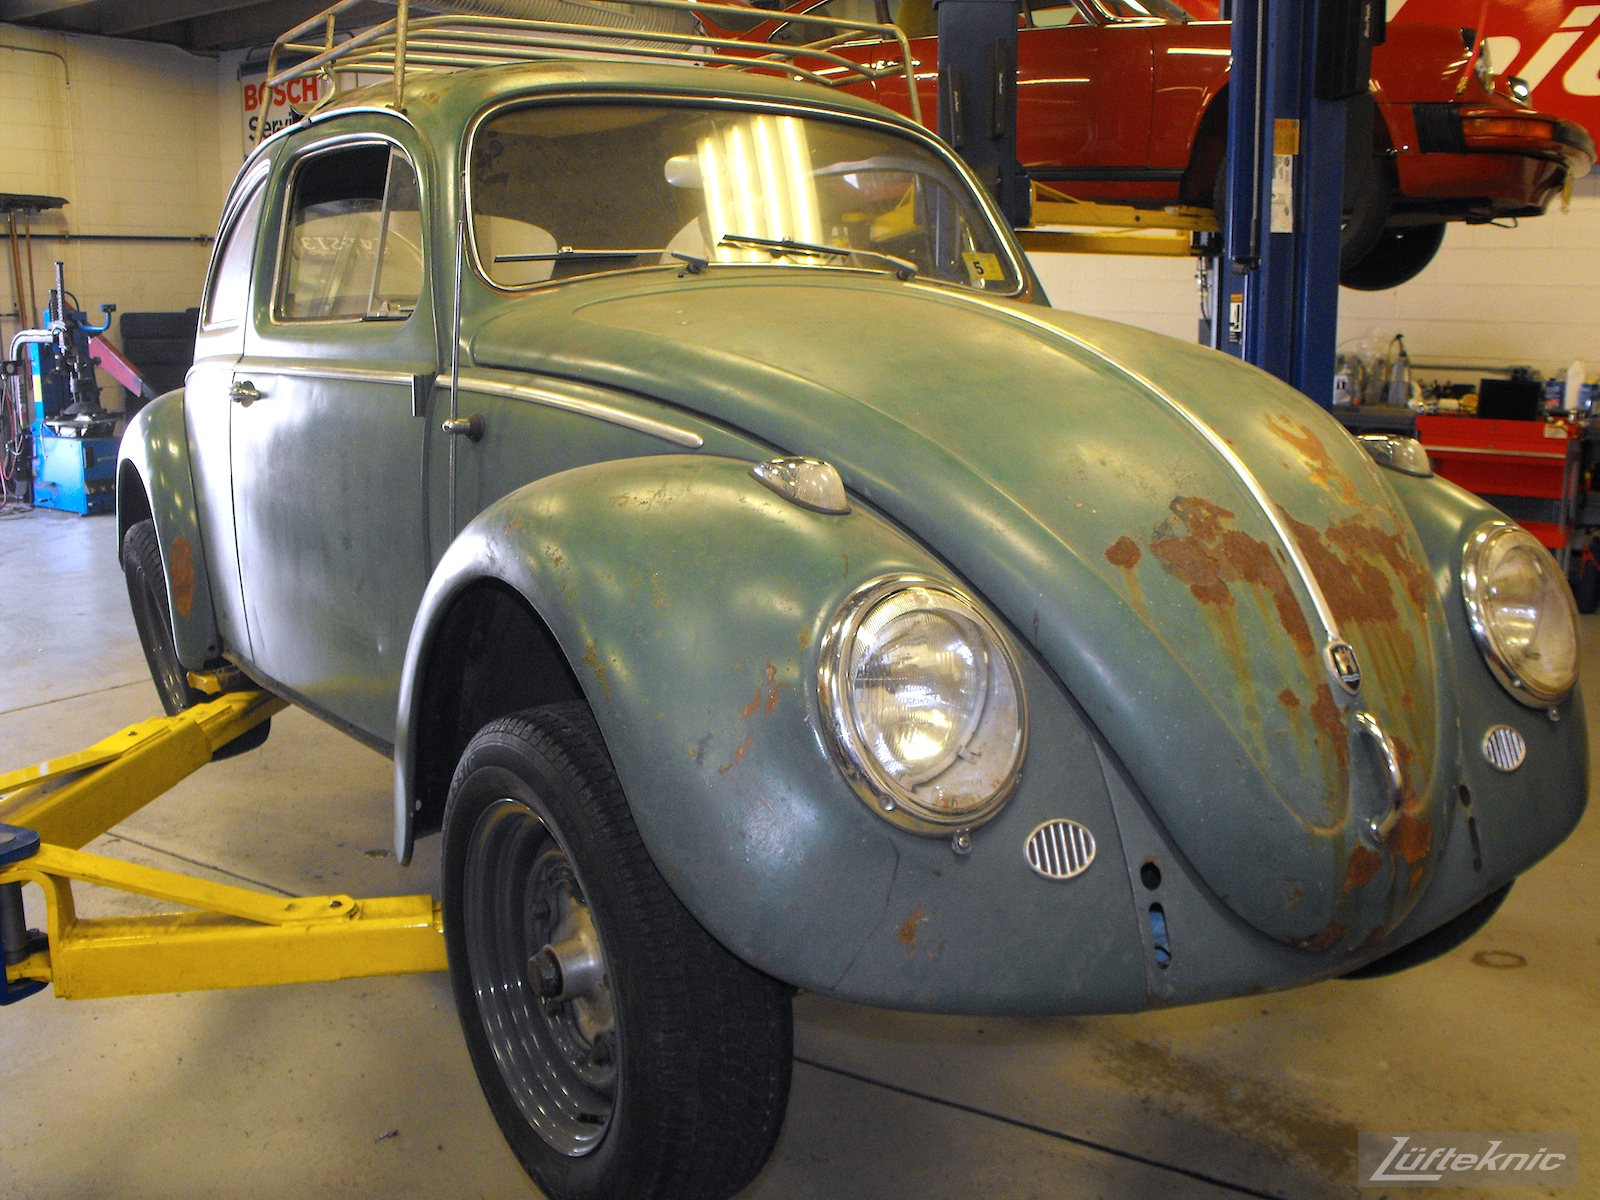 All original green 1960 Beetle with a Porsche 356 engine and brakes.